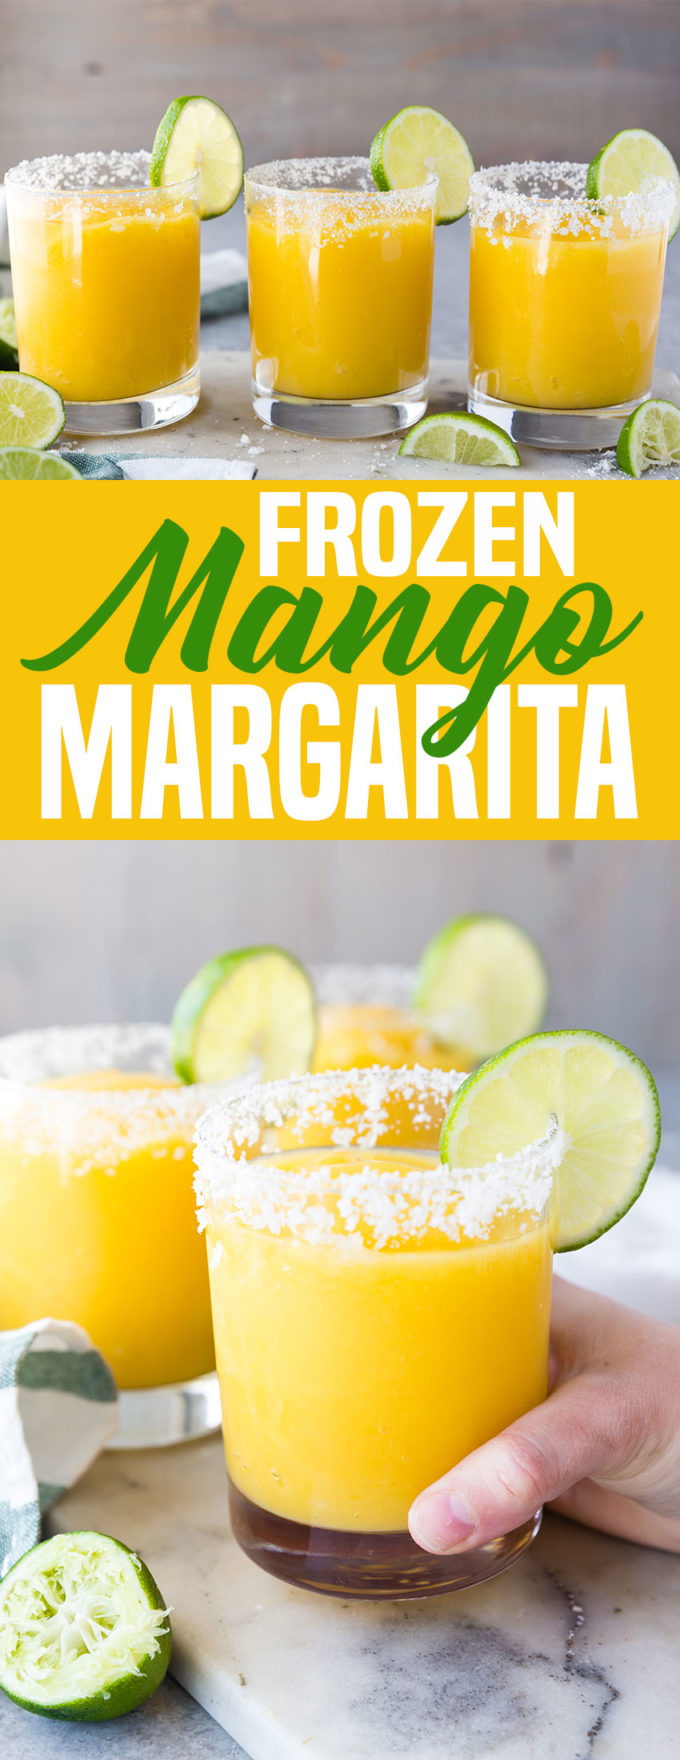 These Mango Margaritas are so good! Frozen margaritas (virgin) that taste so good. Toss in your favorite liquor to make them for adults.